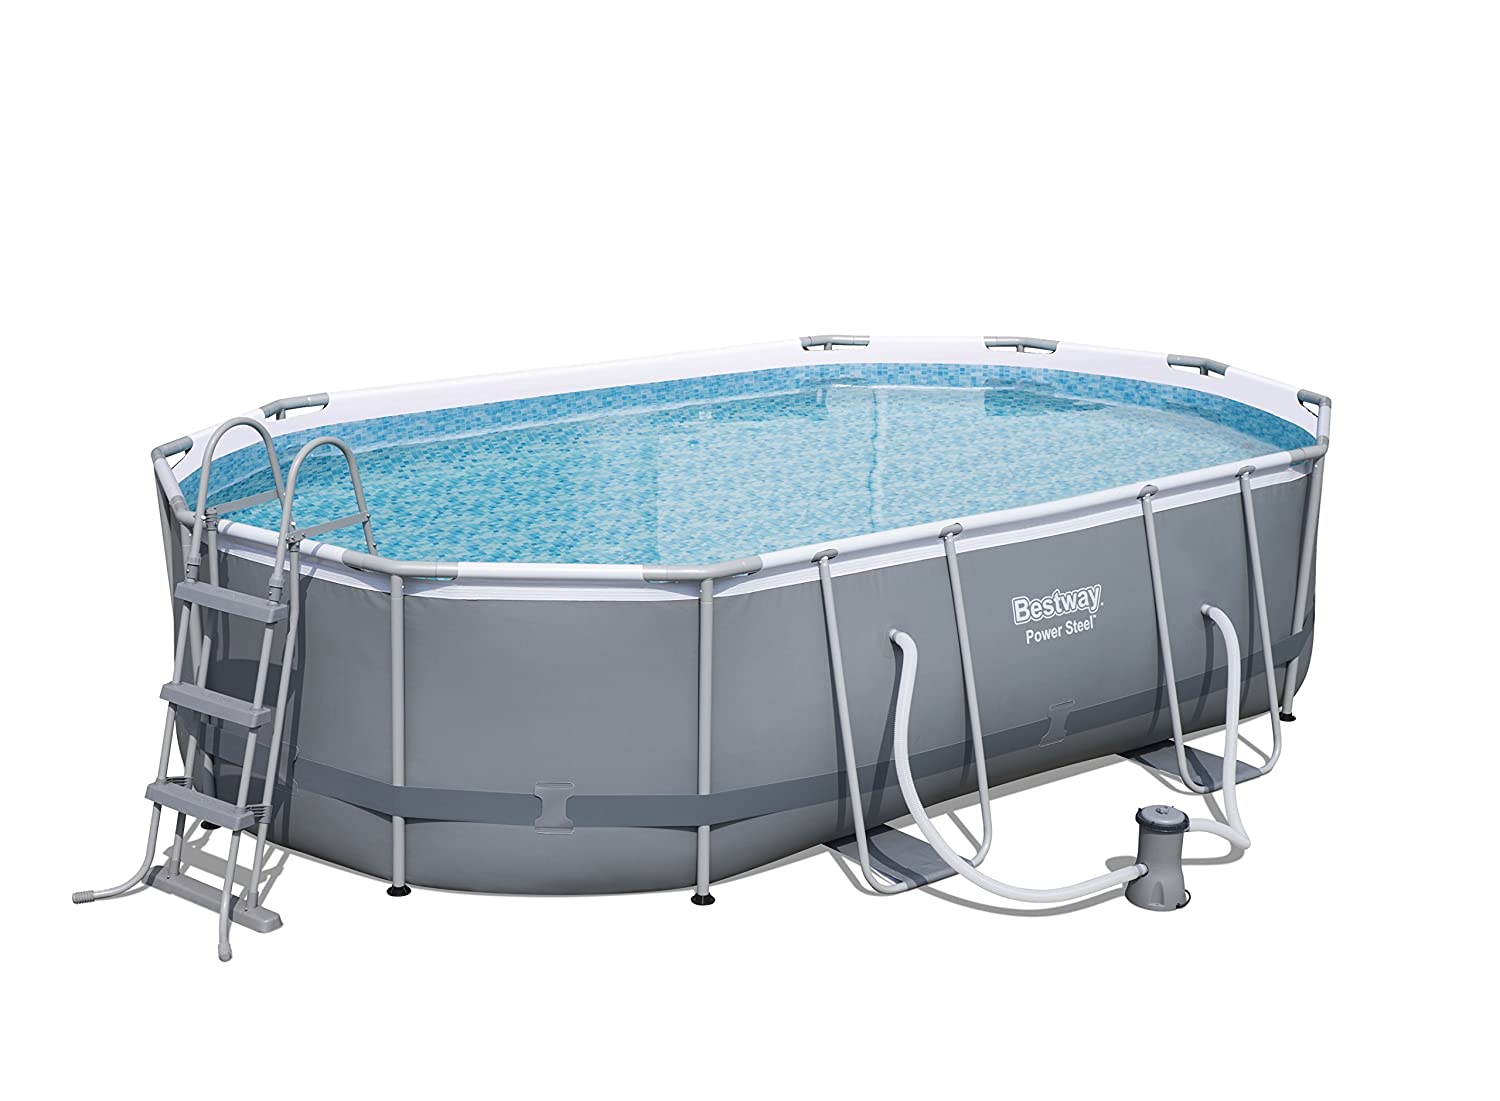 Bestway Power Steel Ovalado Frame Pool Set, Color Gris Oscuro con Bomba de Filtro + Accesorios, 488 x 305 x 107 cm.: Amazon.es: Jardín